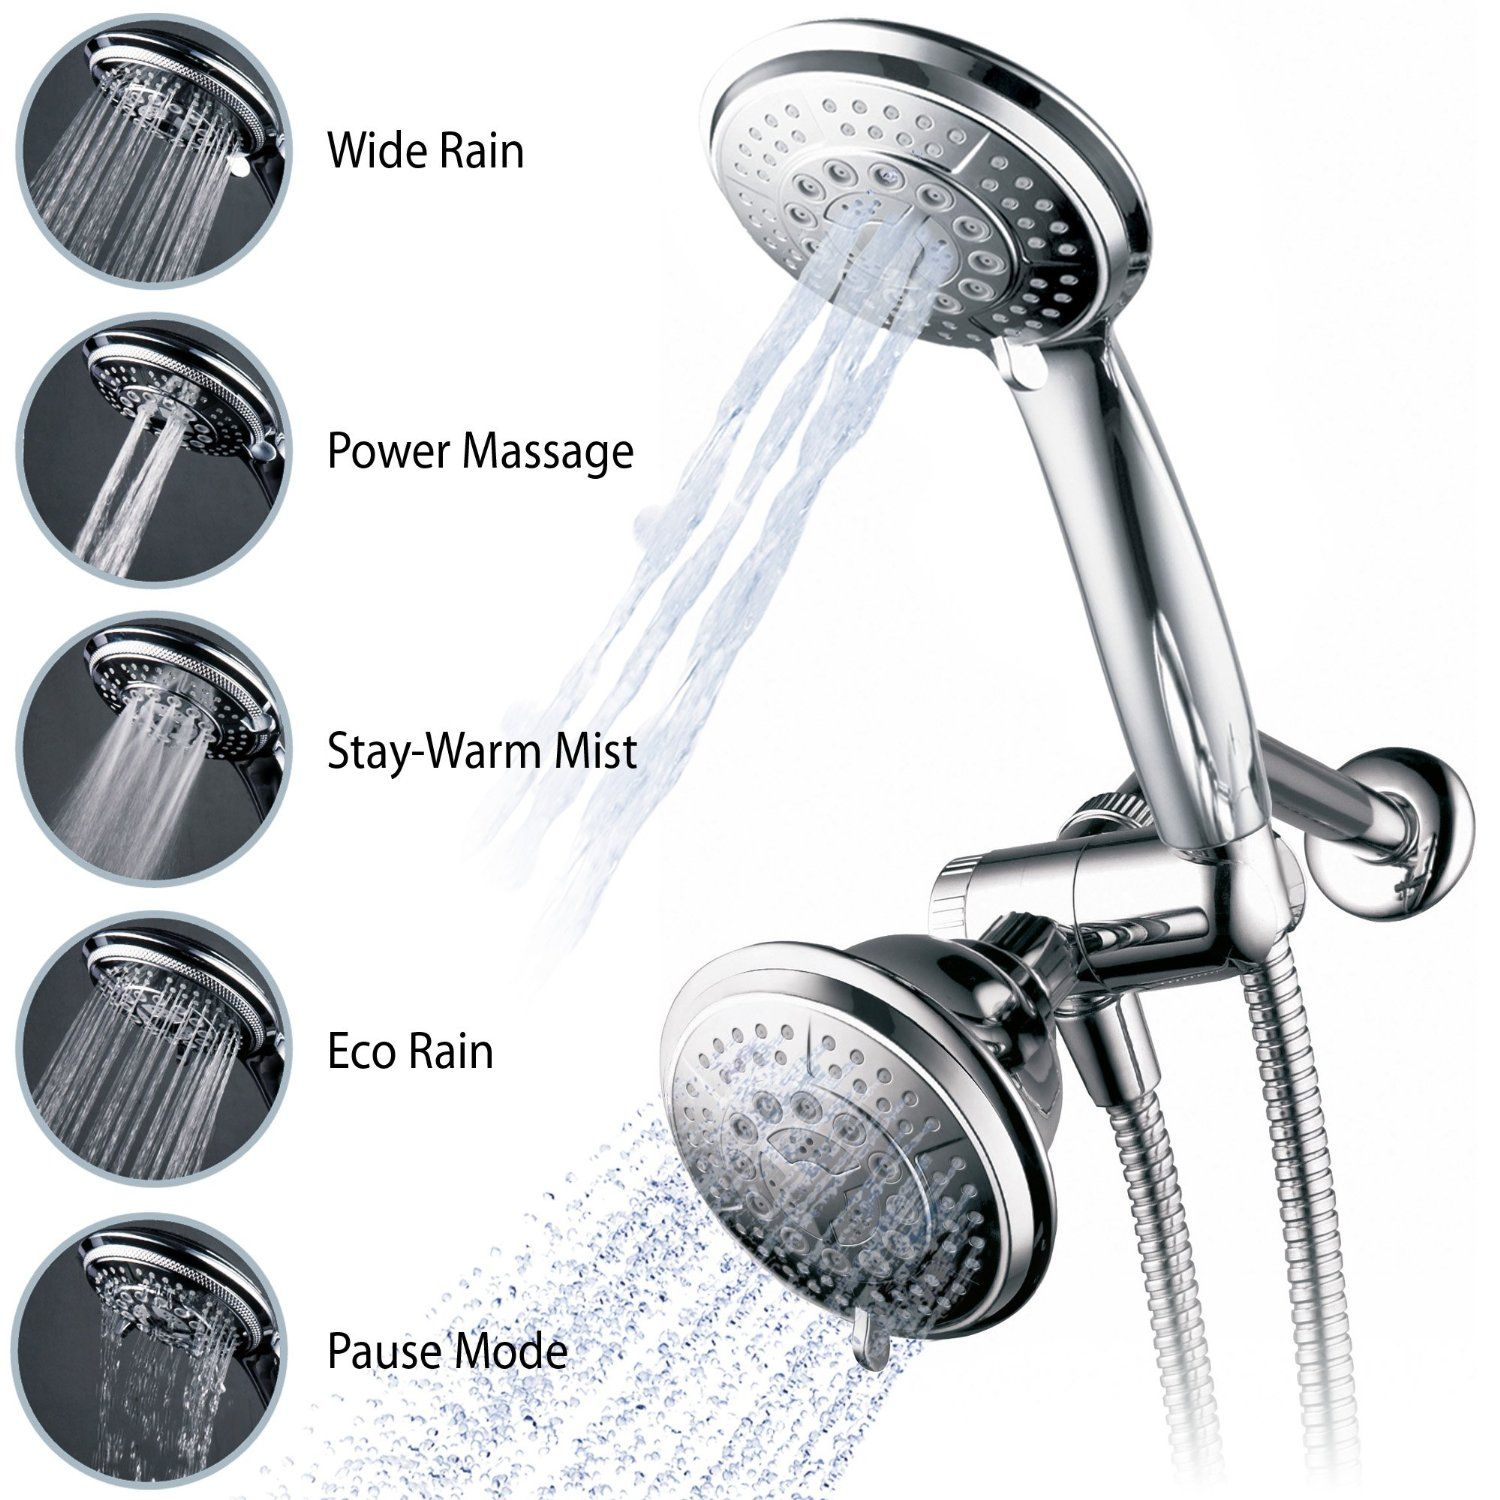 Best Handheld Shower Head Luxurious Experience With A Refreshing